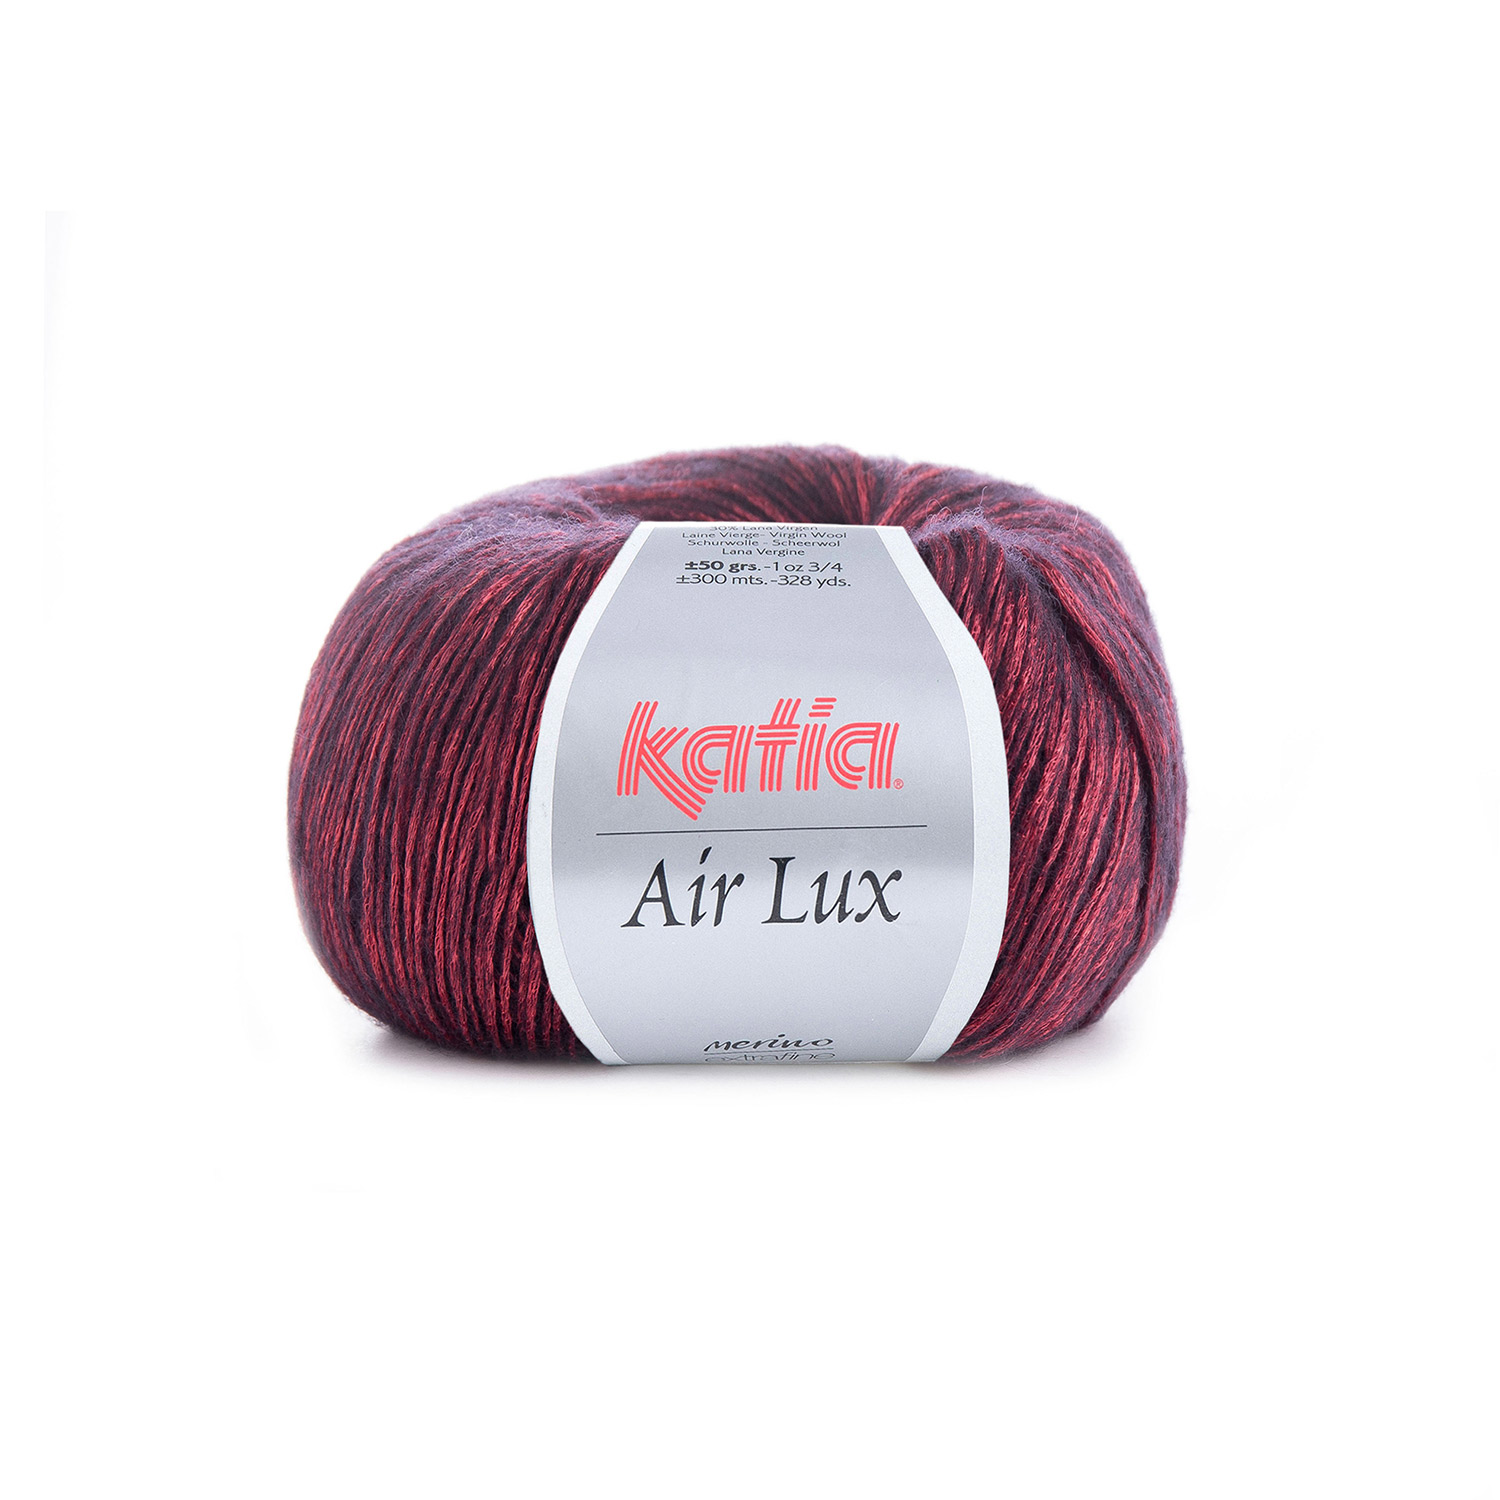 AIR LUX - Autumn / Winter - yarns | Katia.com